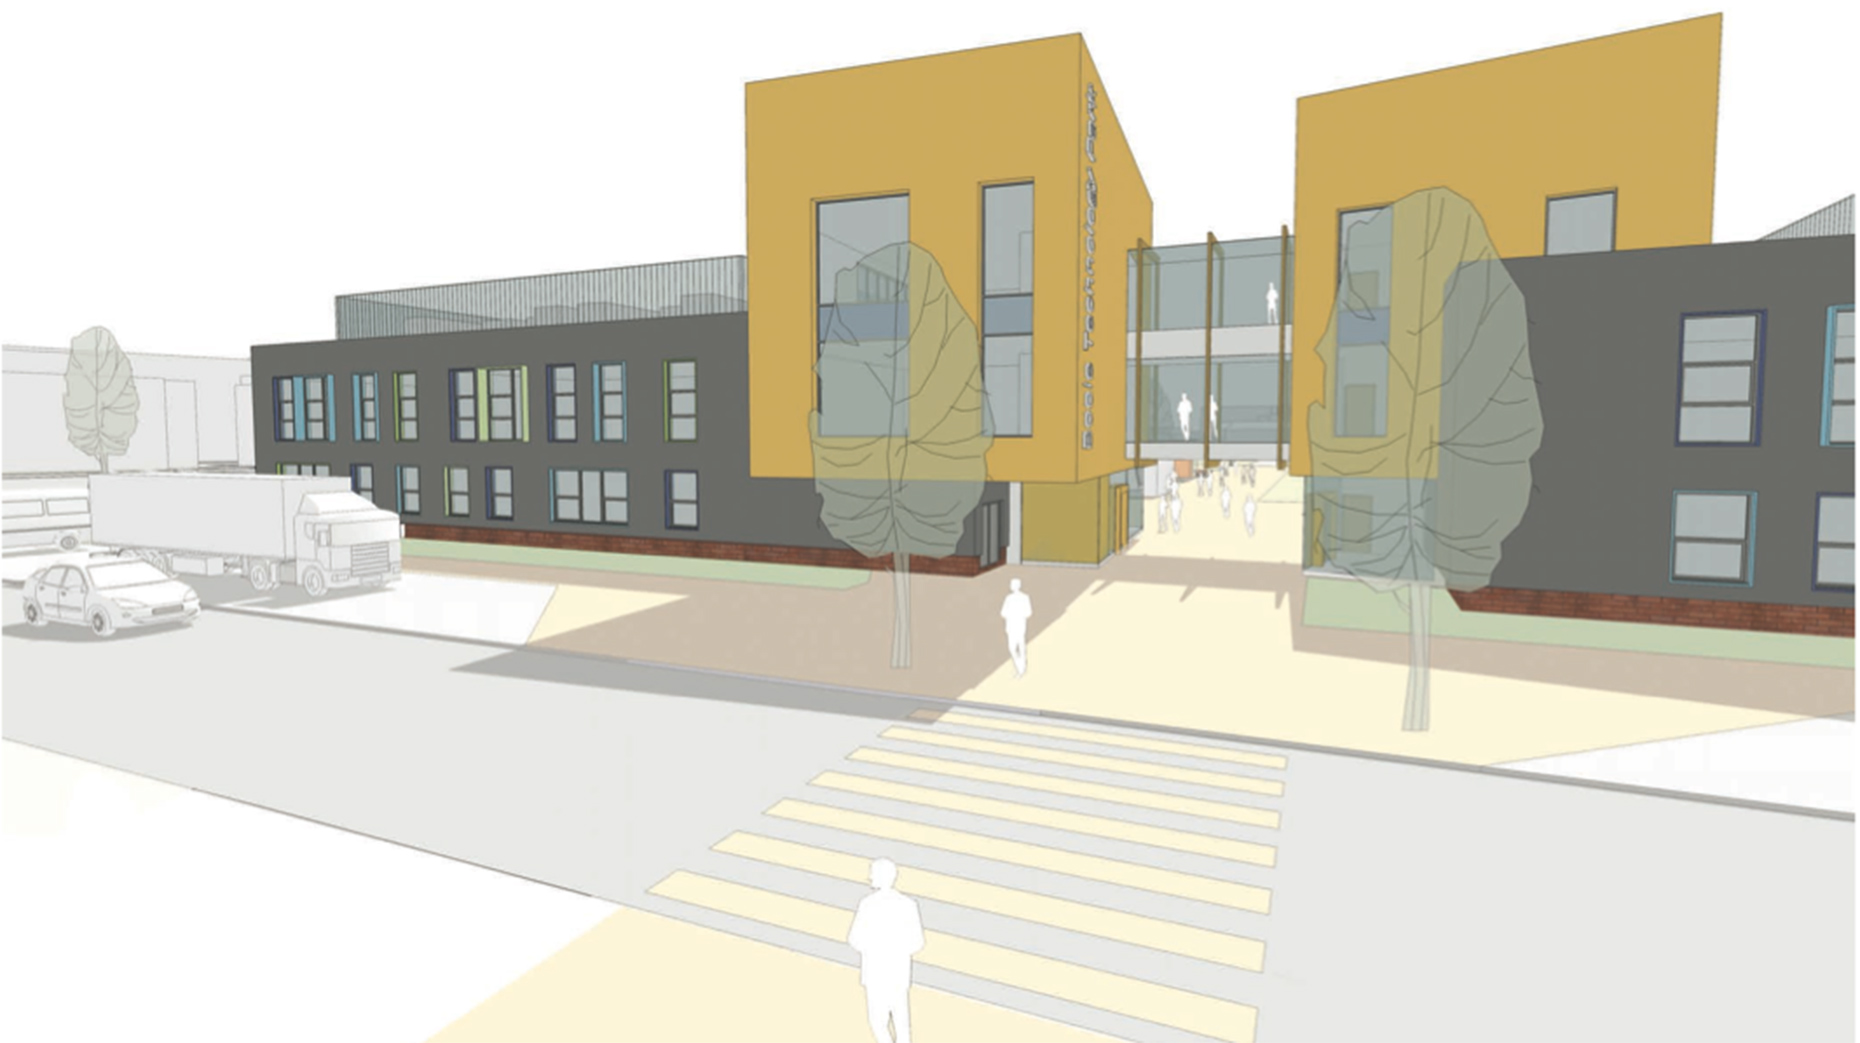 The £6.75 million Boole Technology Centre will house between 100 and 200 highly skilled employees.